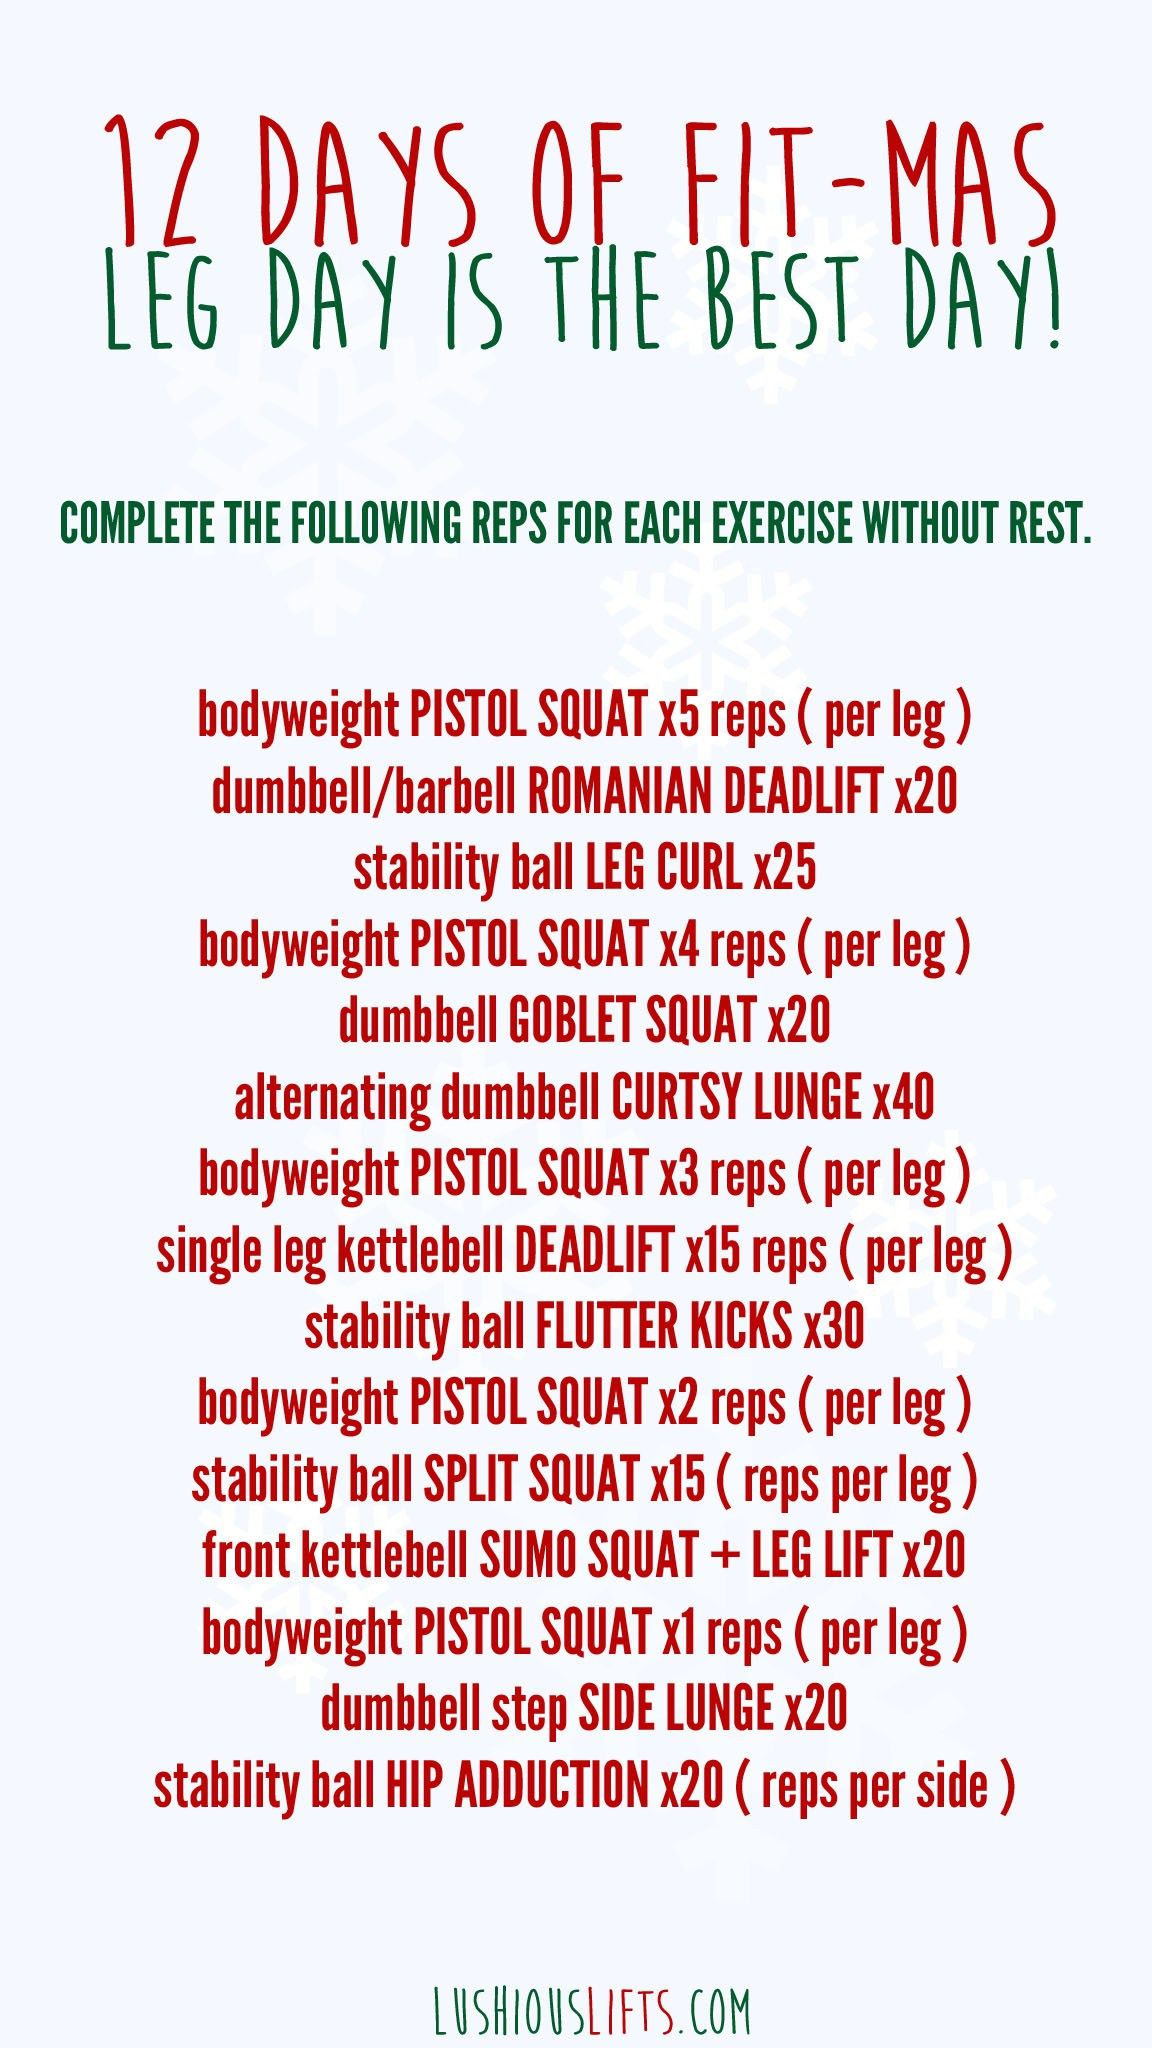 12 Days Of Fit Mas Workout Challenge Day 6 Leg Day Workout Challenge Legs Day Fitness